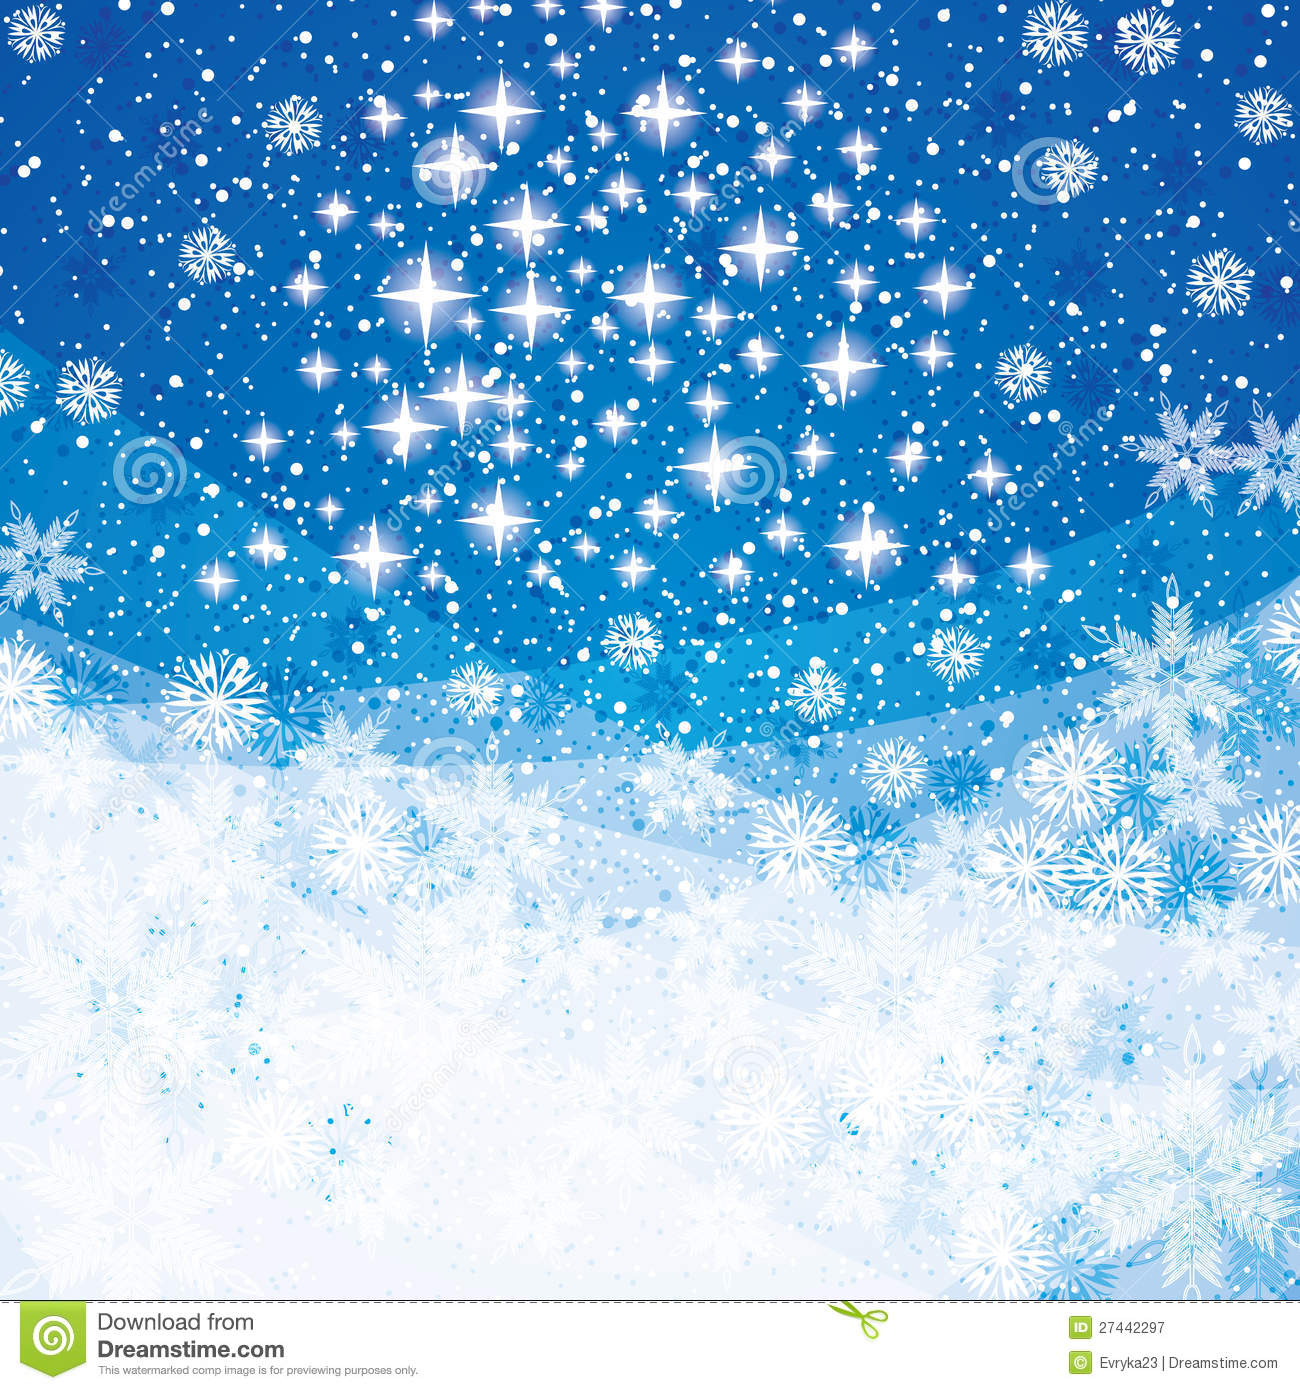 Free Christmas Falling Snow Wallpaper Abstract Winter Christmas Background Royalty Free Stock